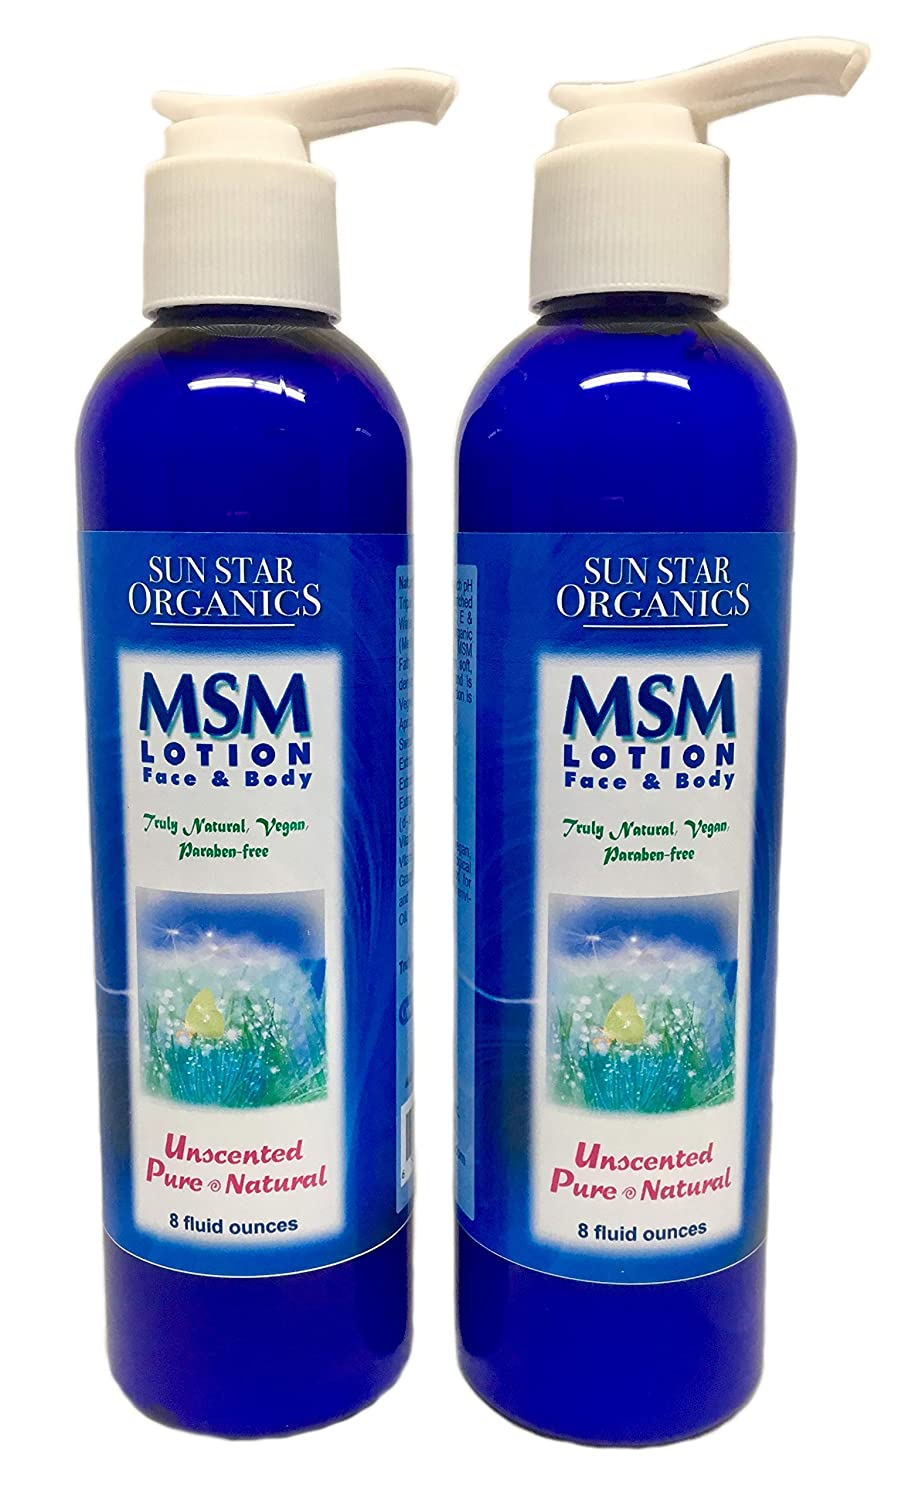 Unscented, Chemical-free MSM (Methylsulfonylmethane) Pure & Natural Lotion - 8oz - 2 PACK